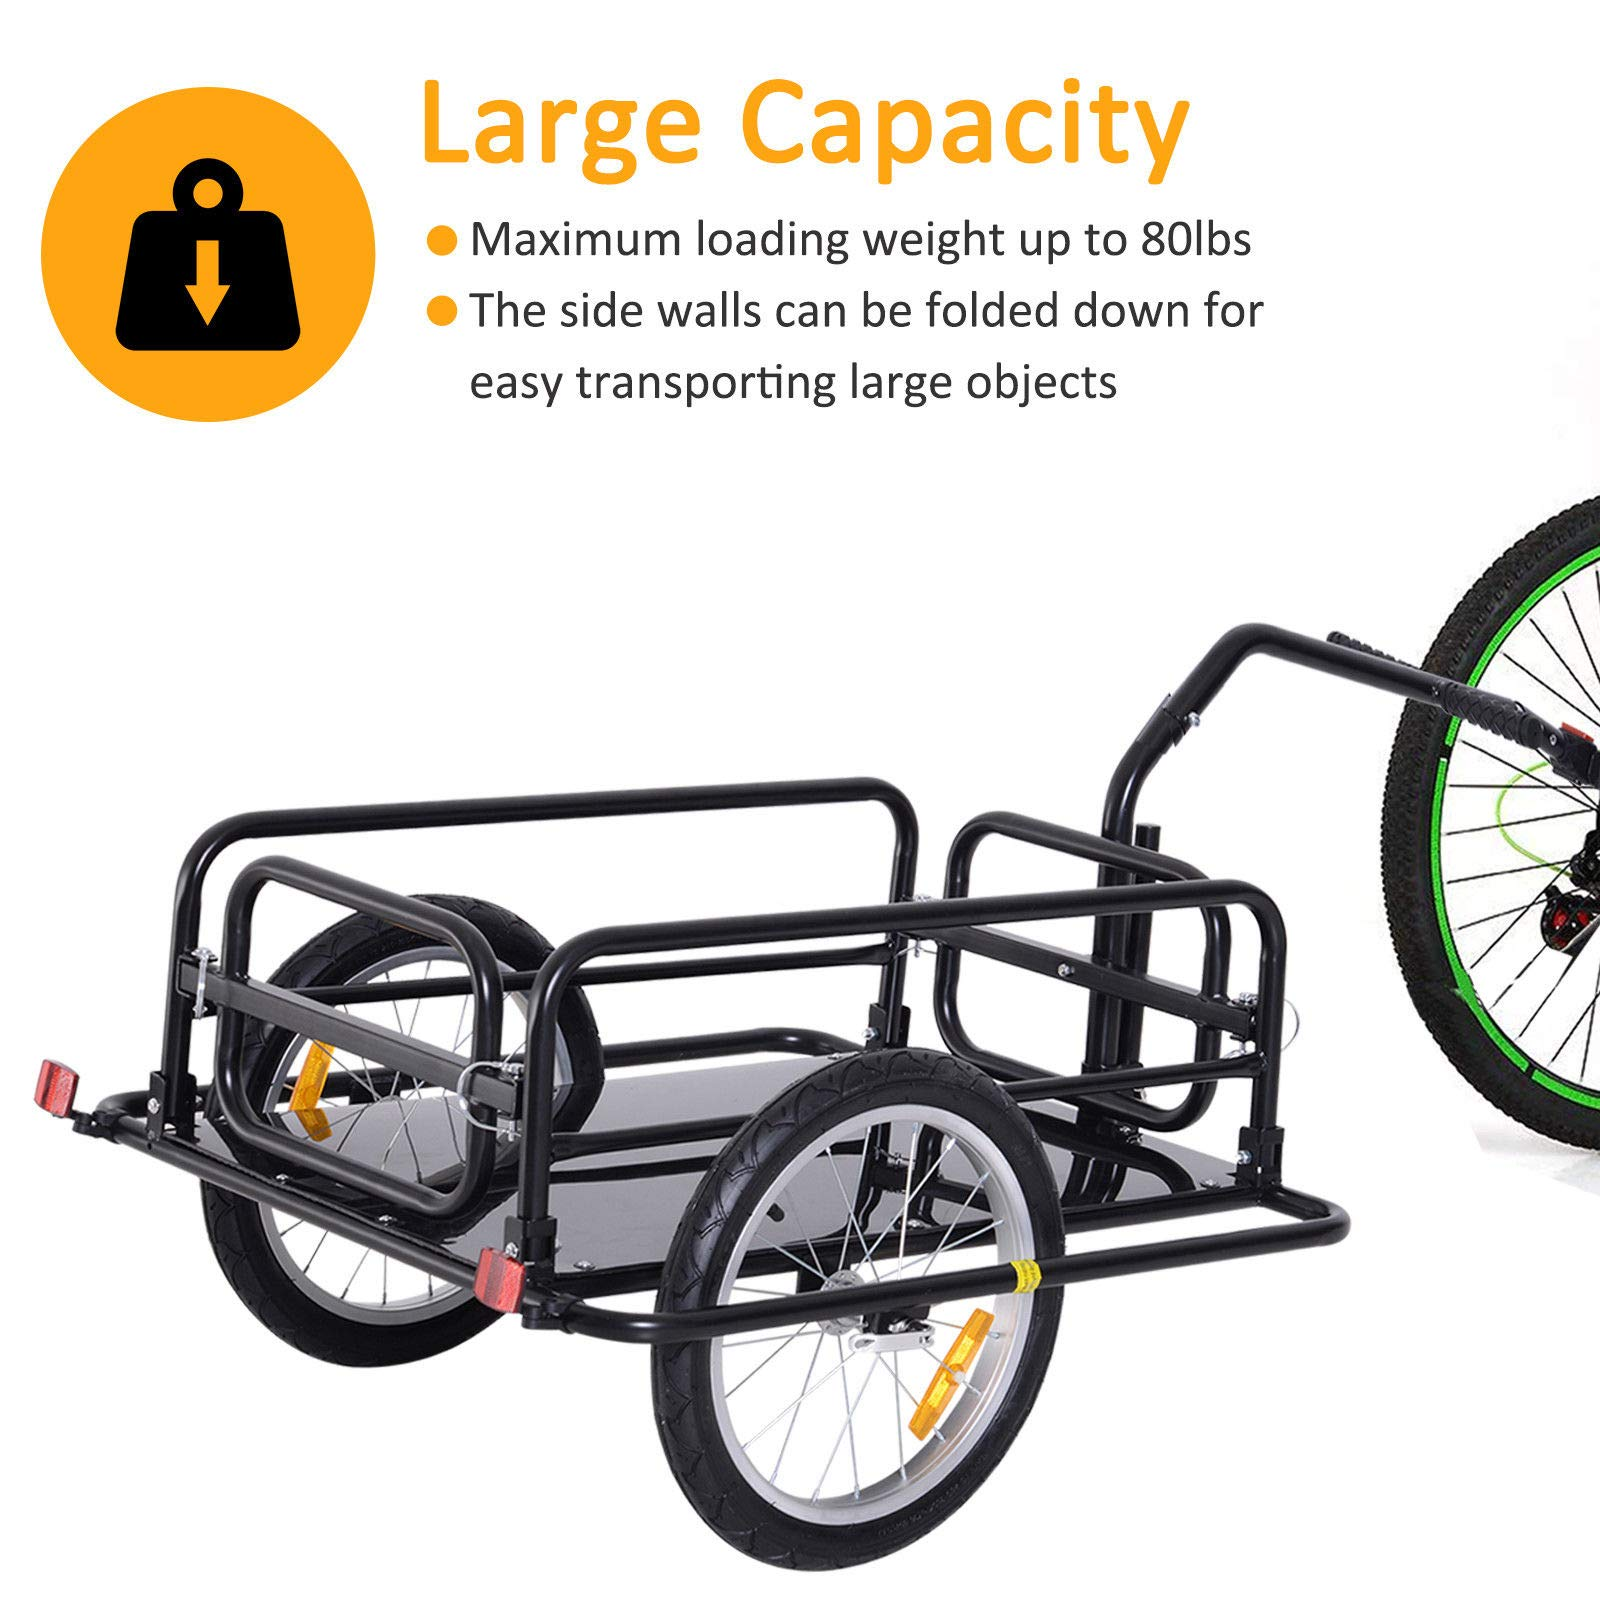 Bike Cargo Storage Cart and Luggage Trailer with Hitch Folding Bicycle Black by Caraya (Image #4)